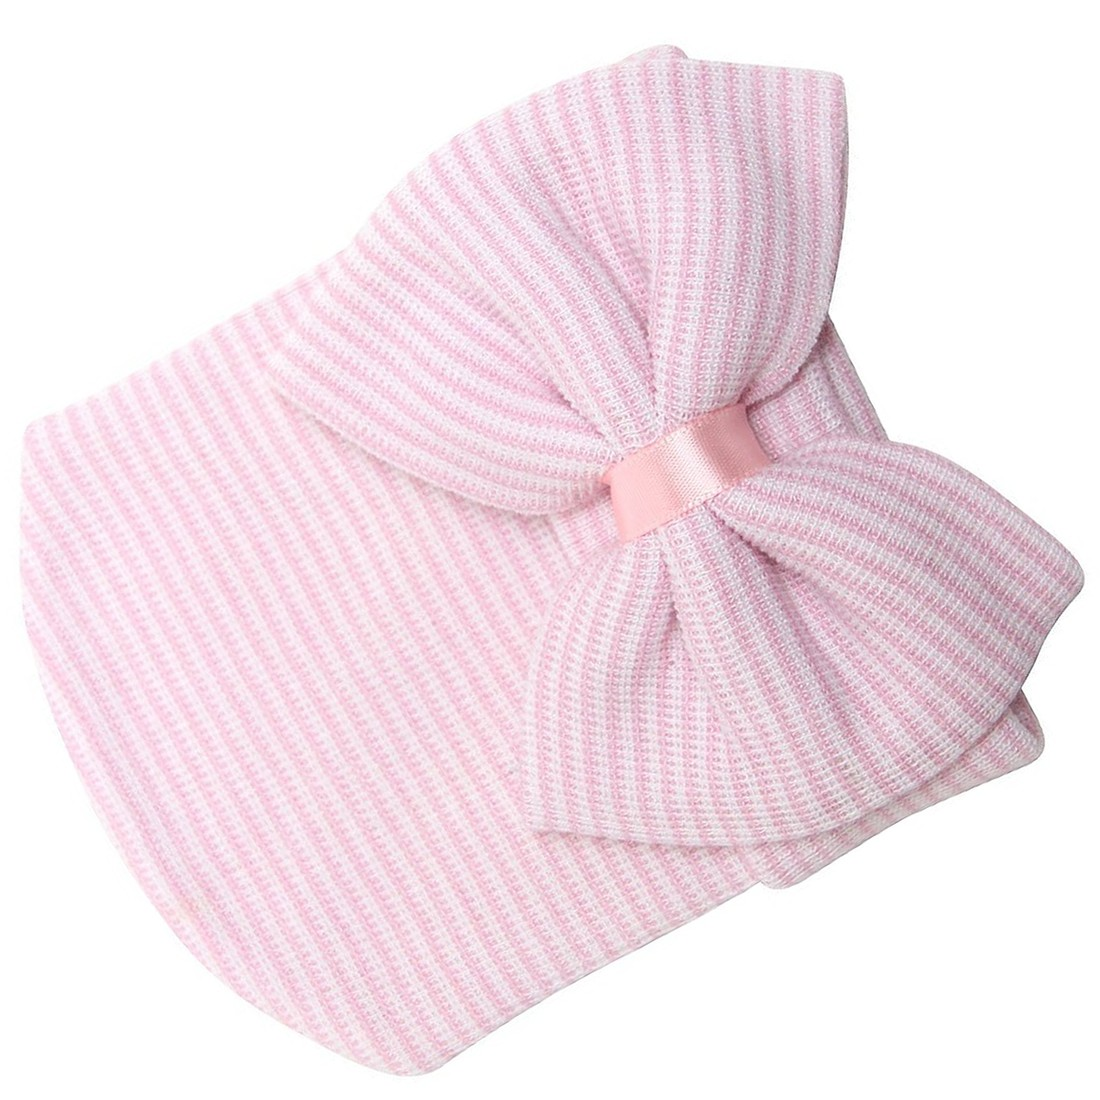 MACH Newborn Baby Beanie Hospital Hat With Bow Cute Soft Sweet Baby Cap (Pink)